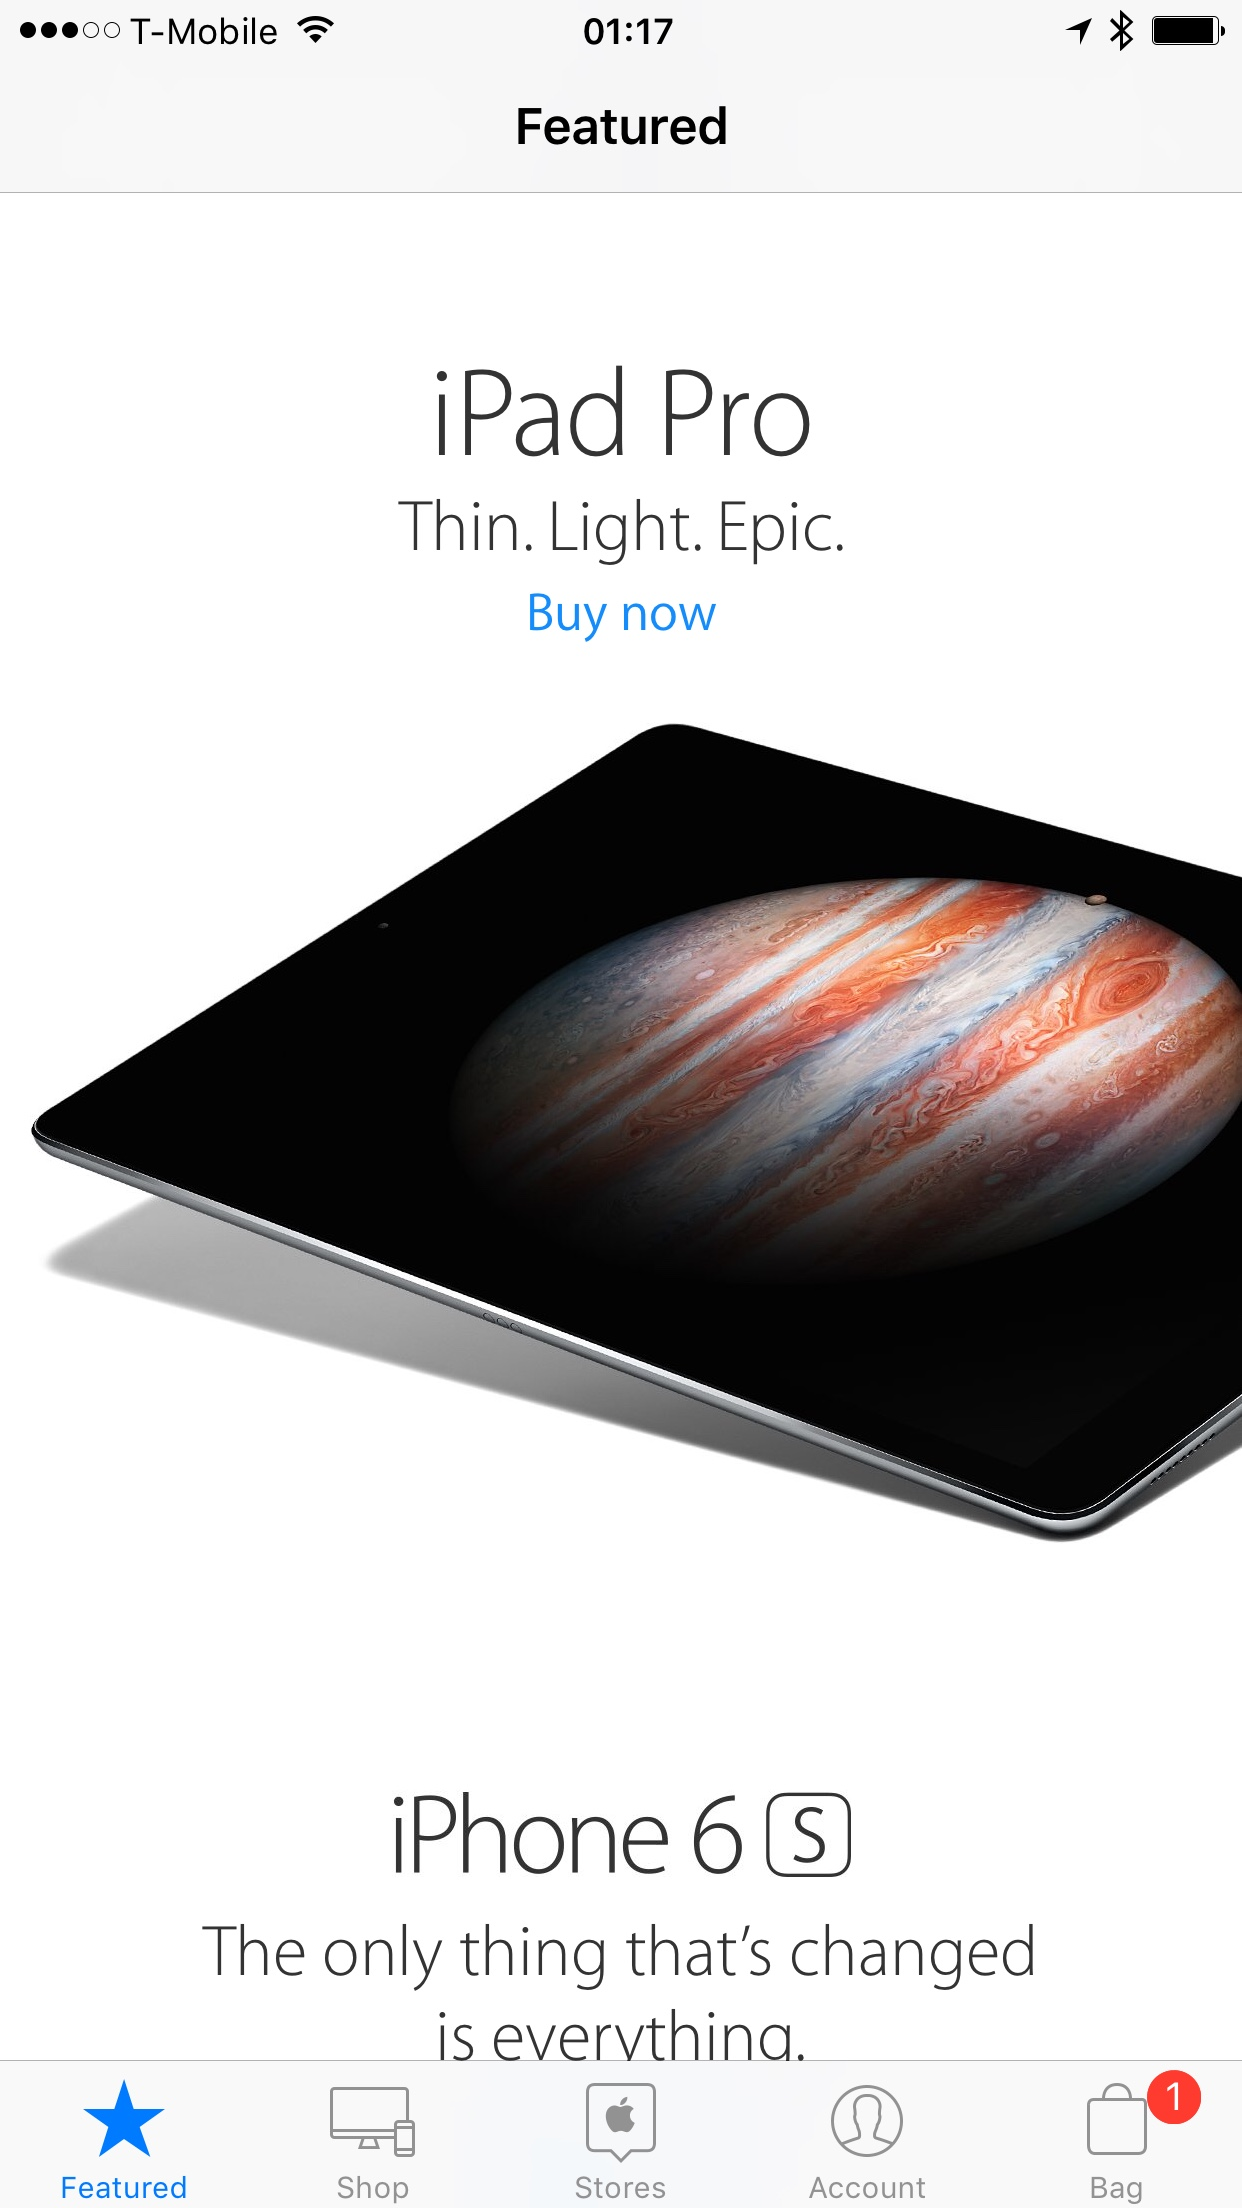 iPad Pro is now available